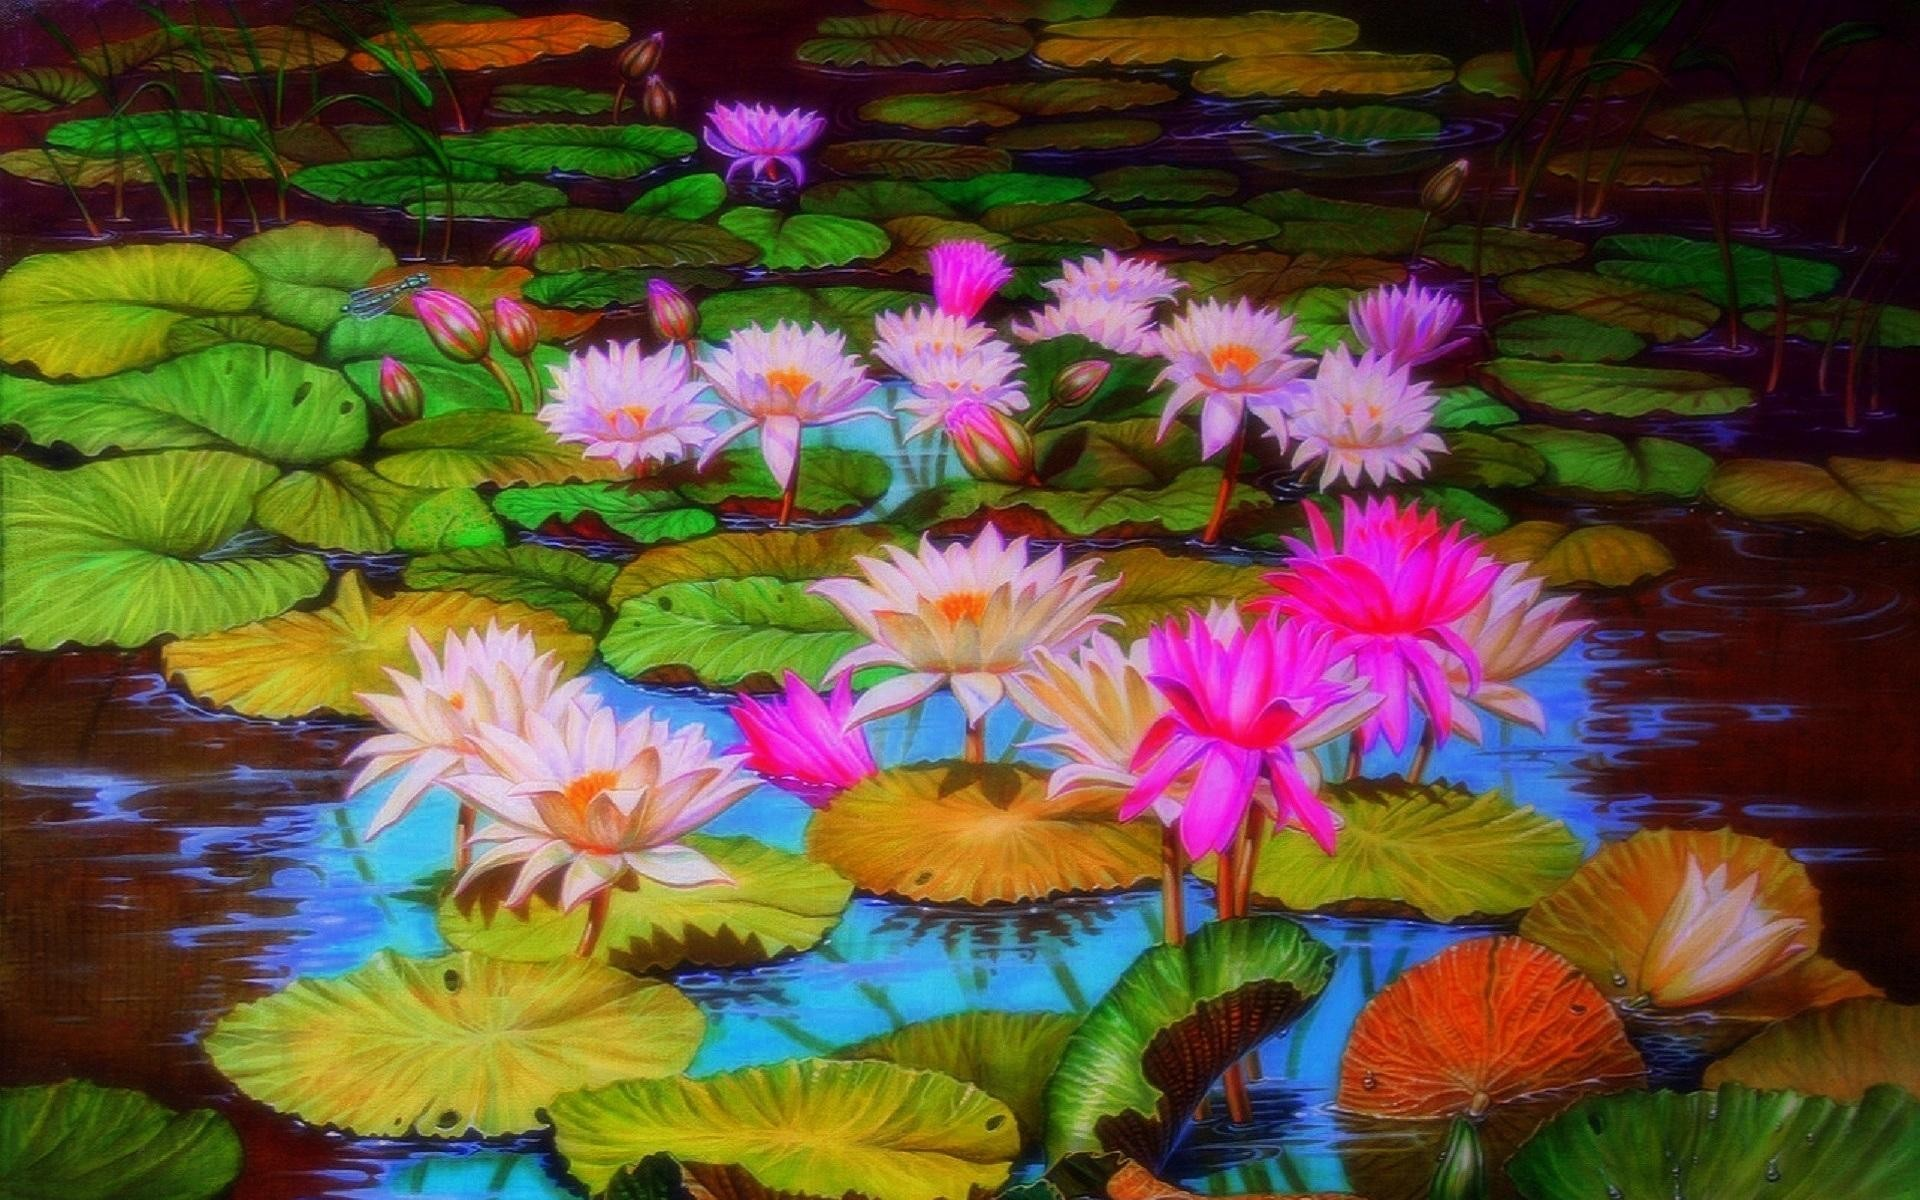 1920x1200 Pond with Lotus Flowers